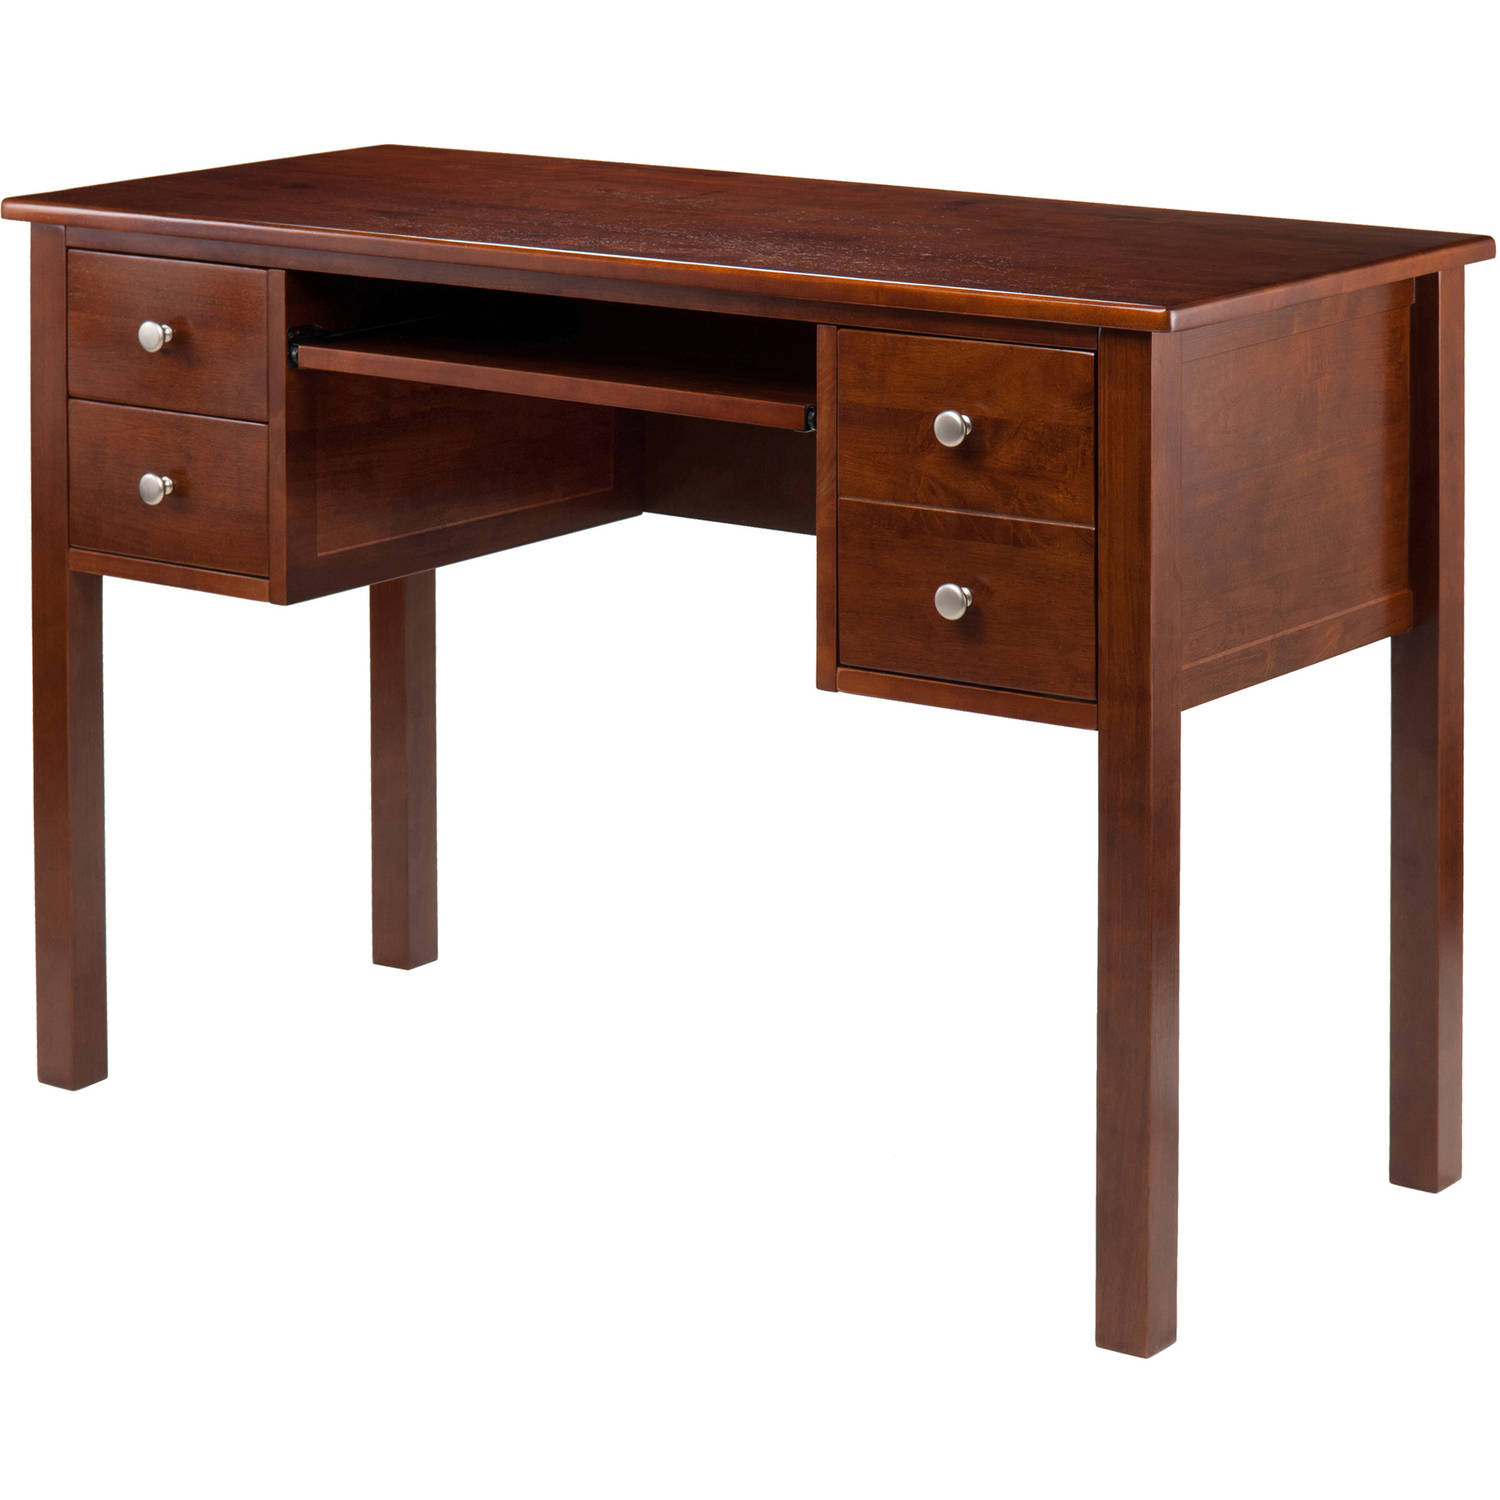 Winsome Emmett Writing Desk with Pull Out Keyboard - 2 Drawers - 1 File Drawer